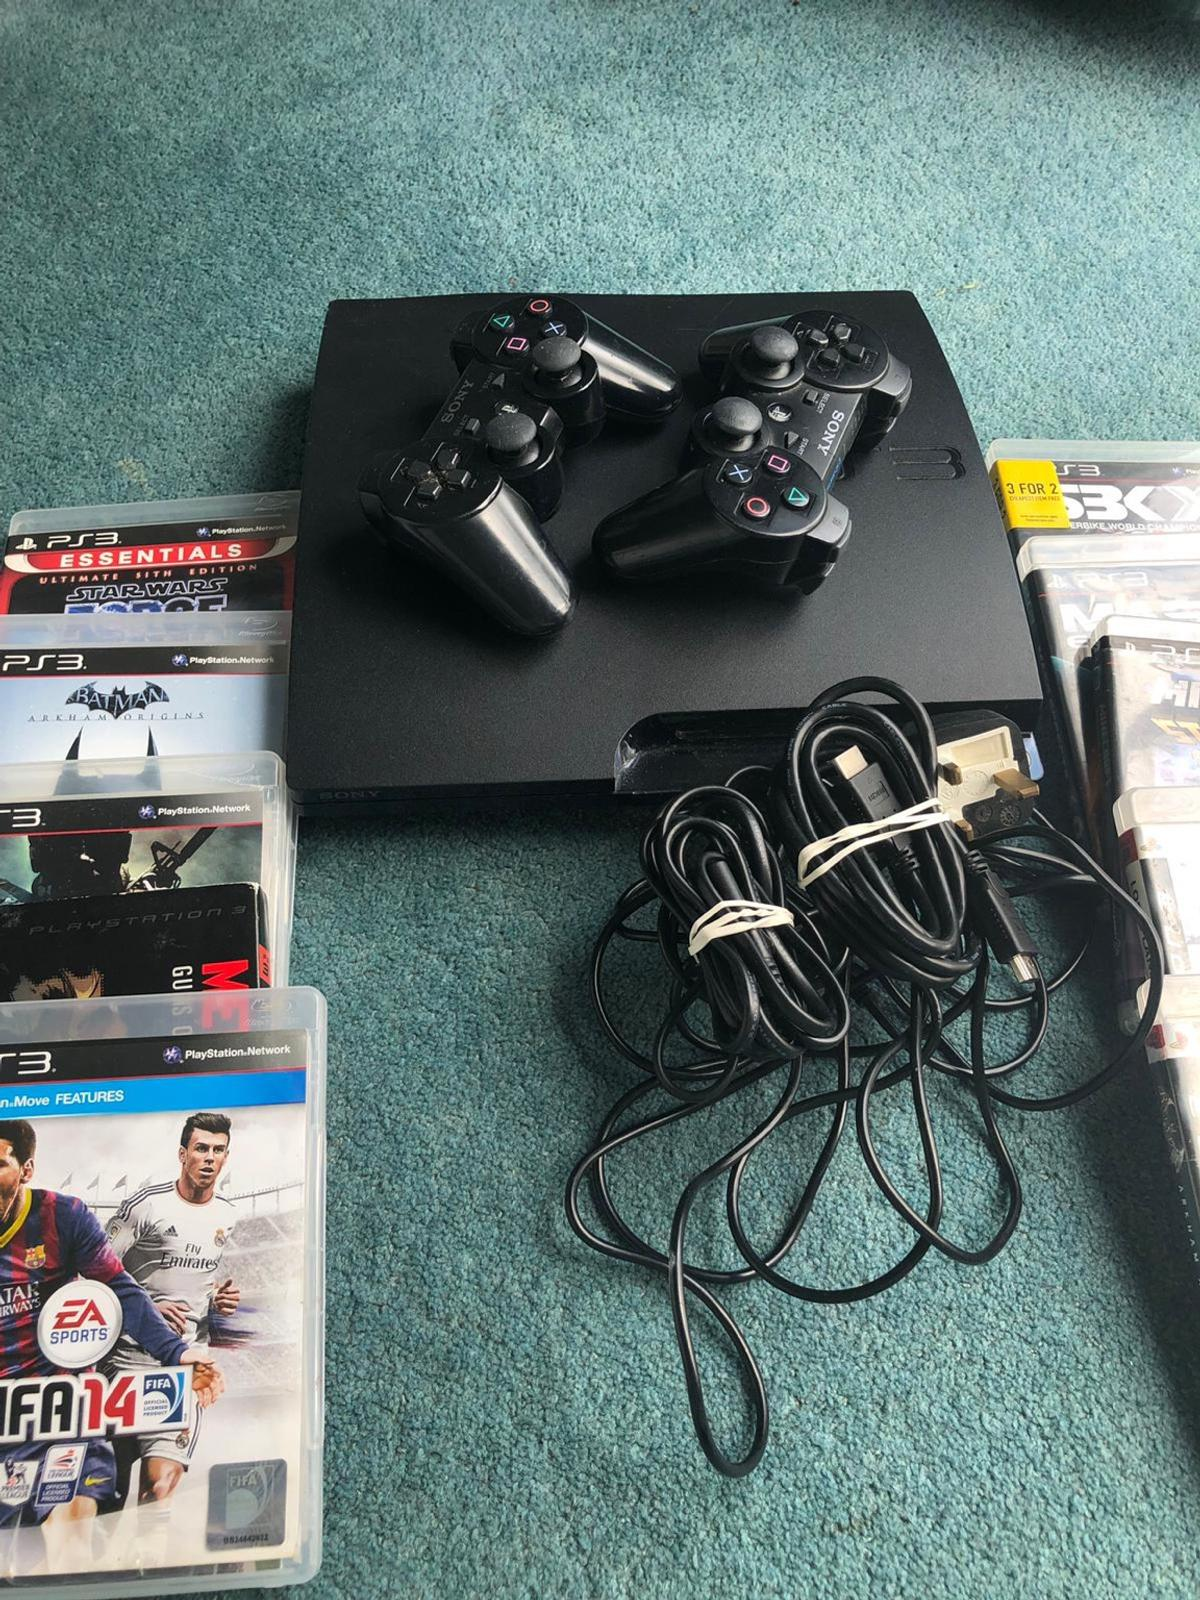 Ps3 console and games in KT3 Thames for £100 00 for sale